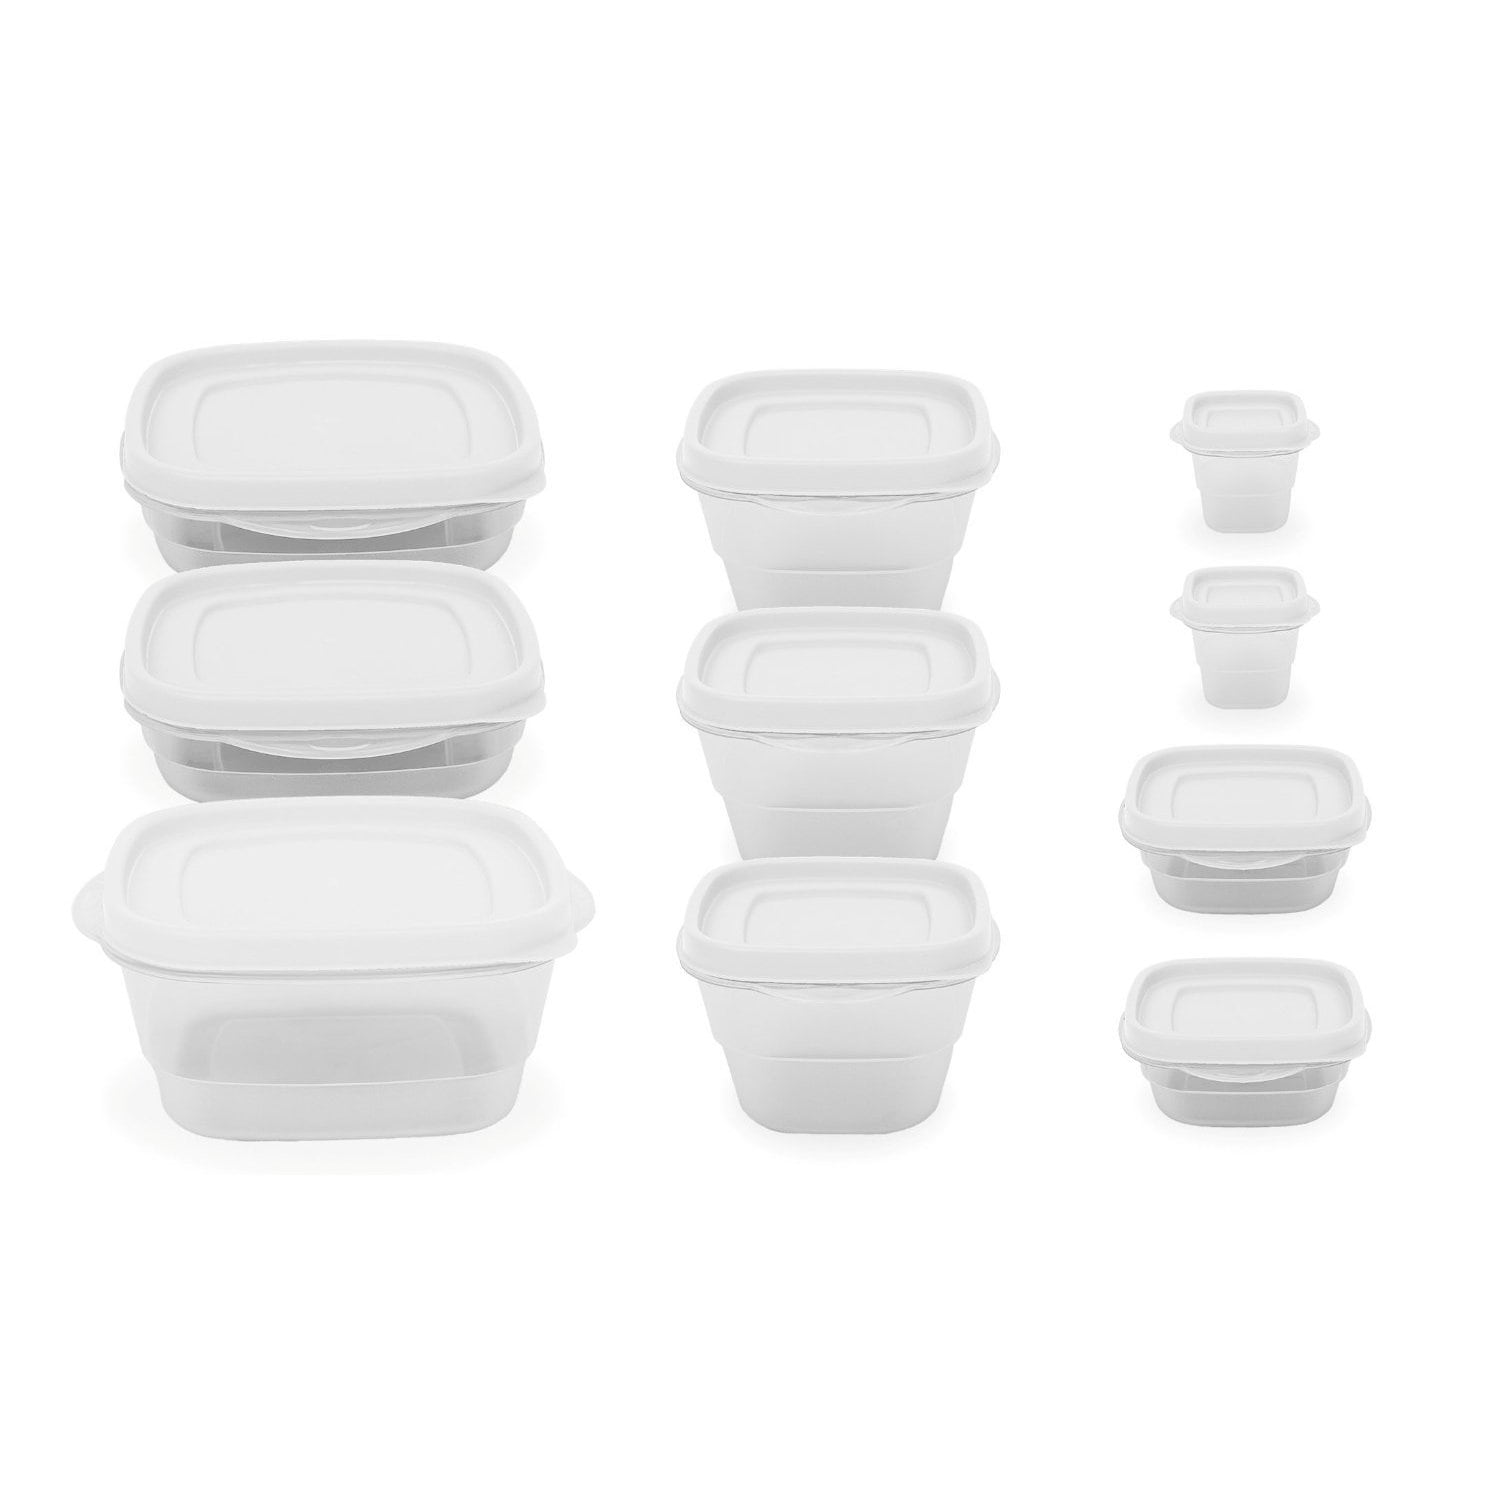 Imperial Home 10 Pc Reusable Food Storage Containers - Tr...